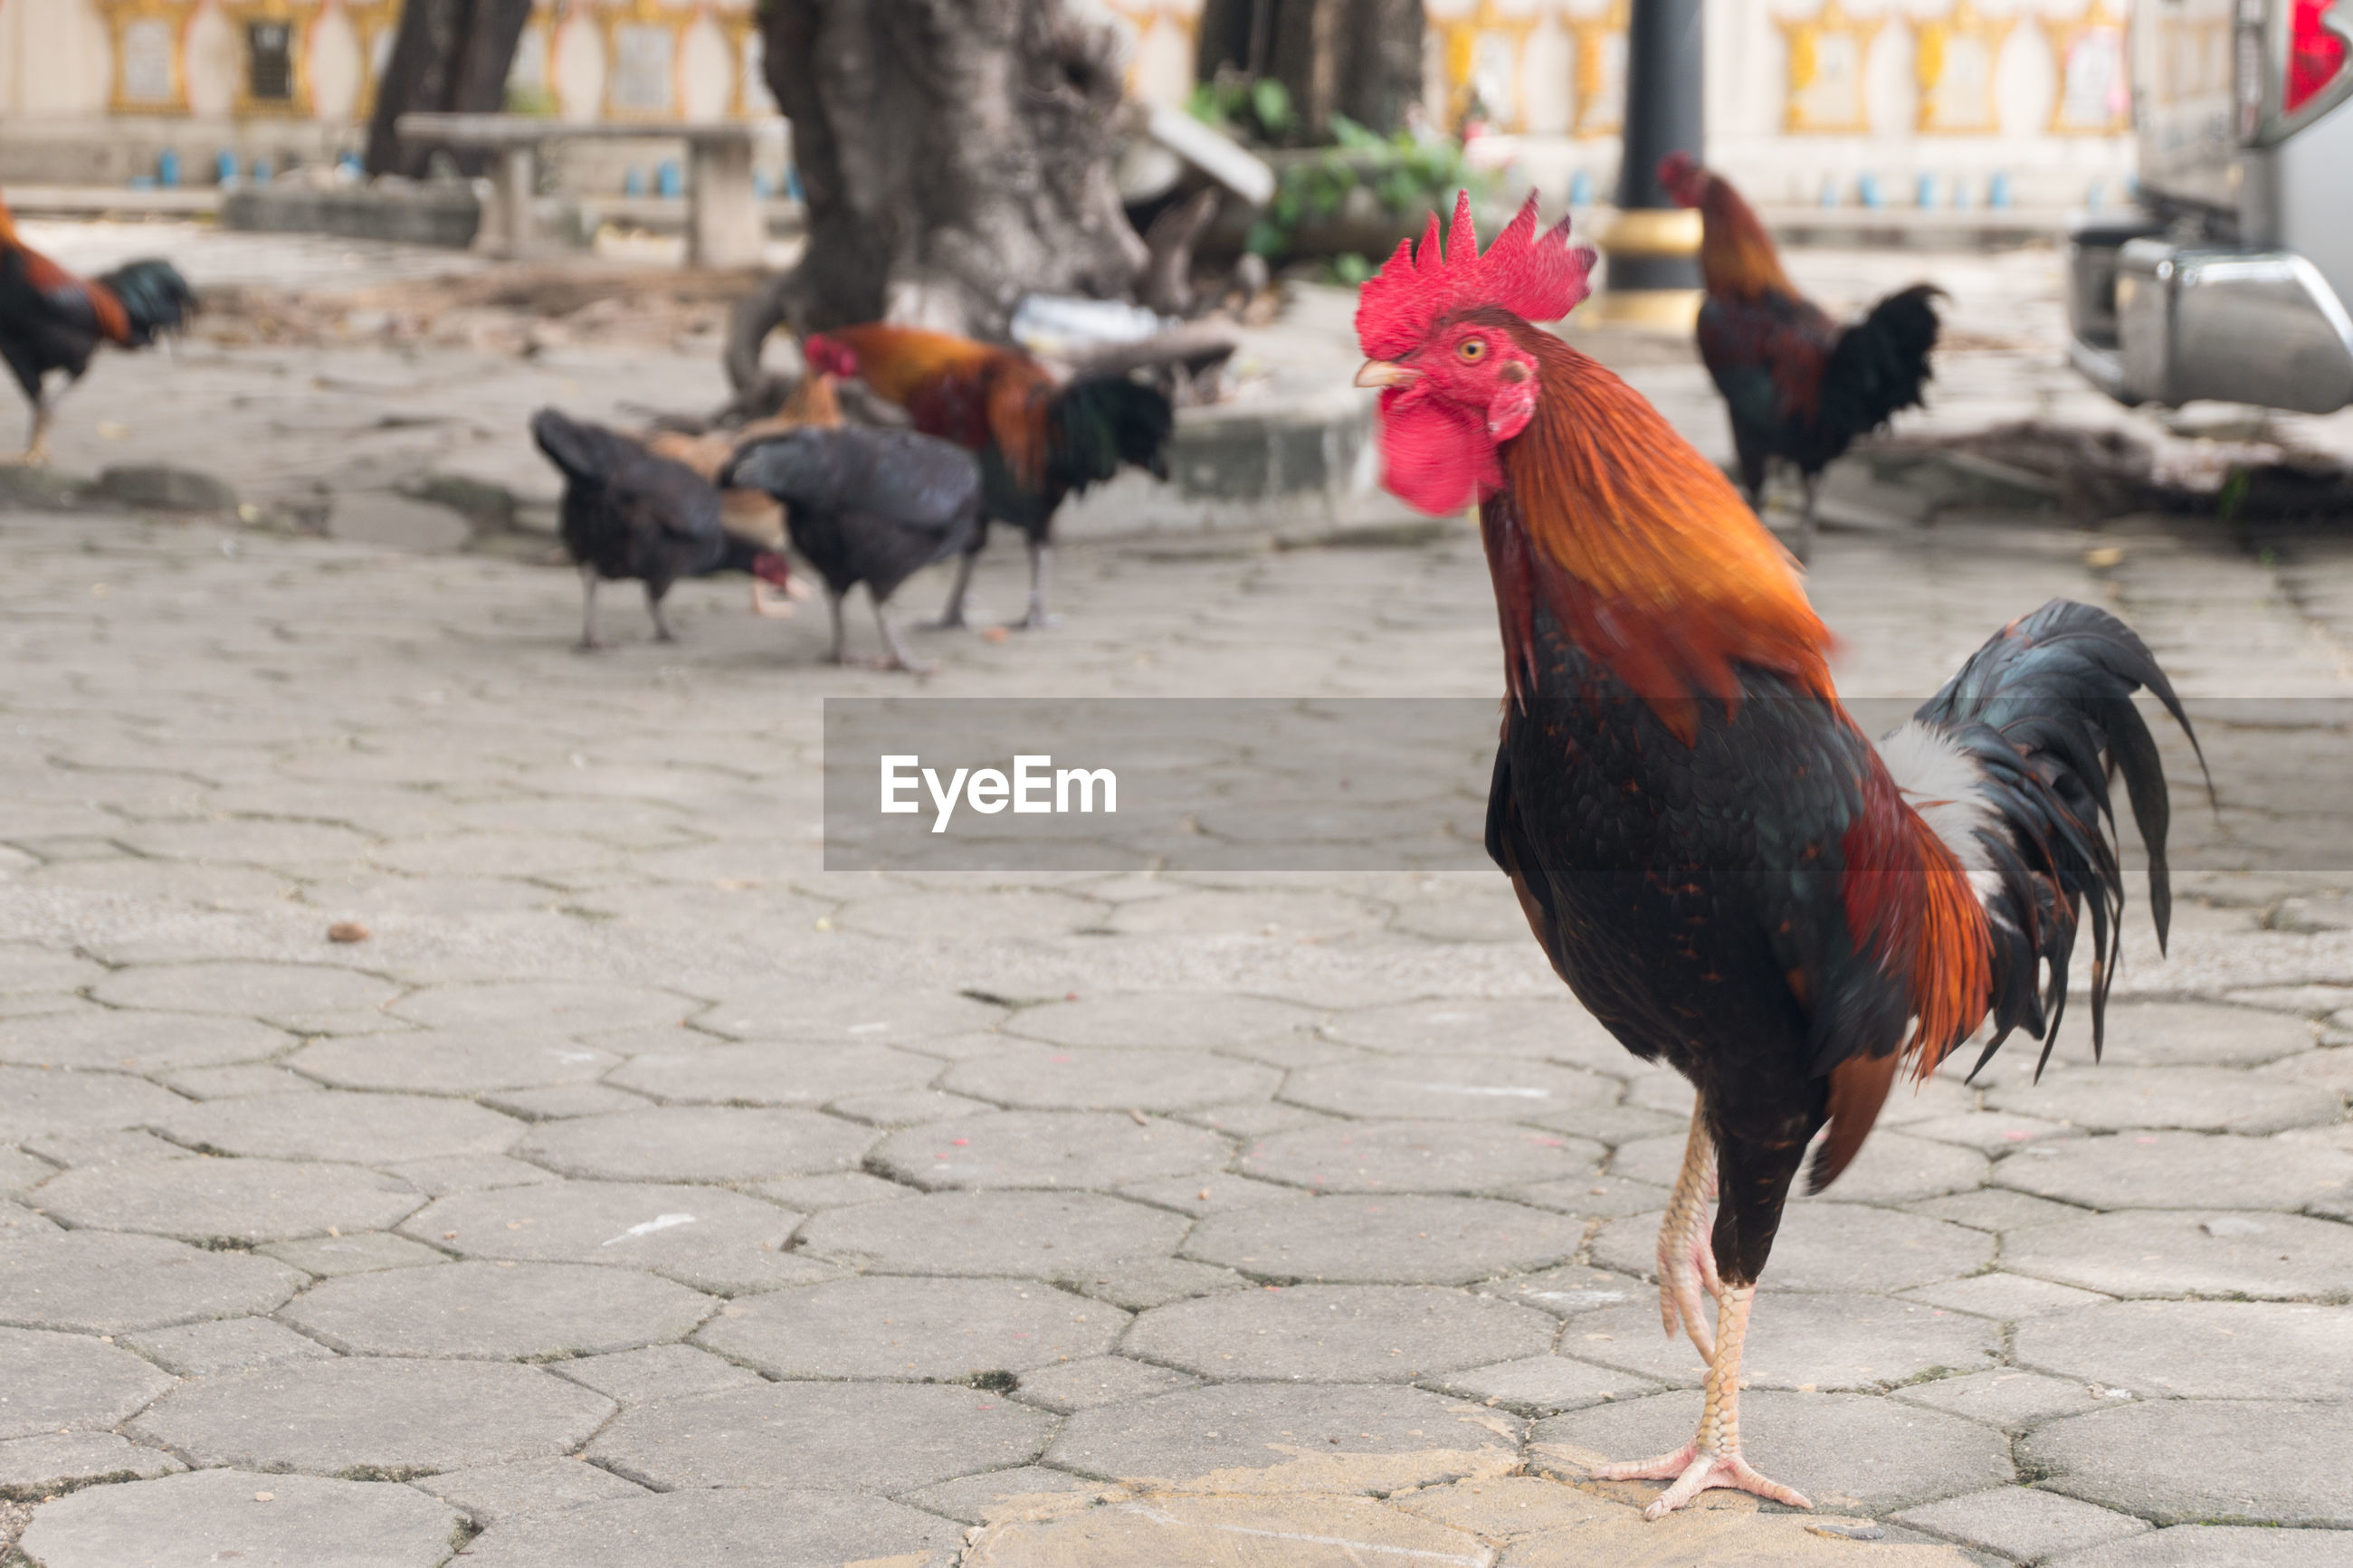 Roosters on footpath